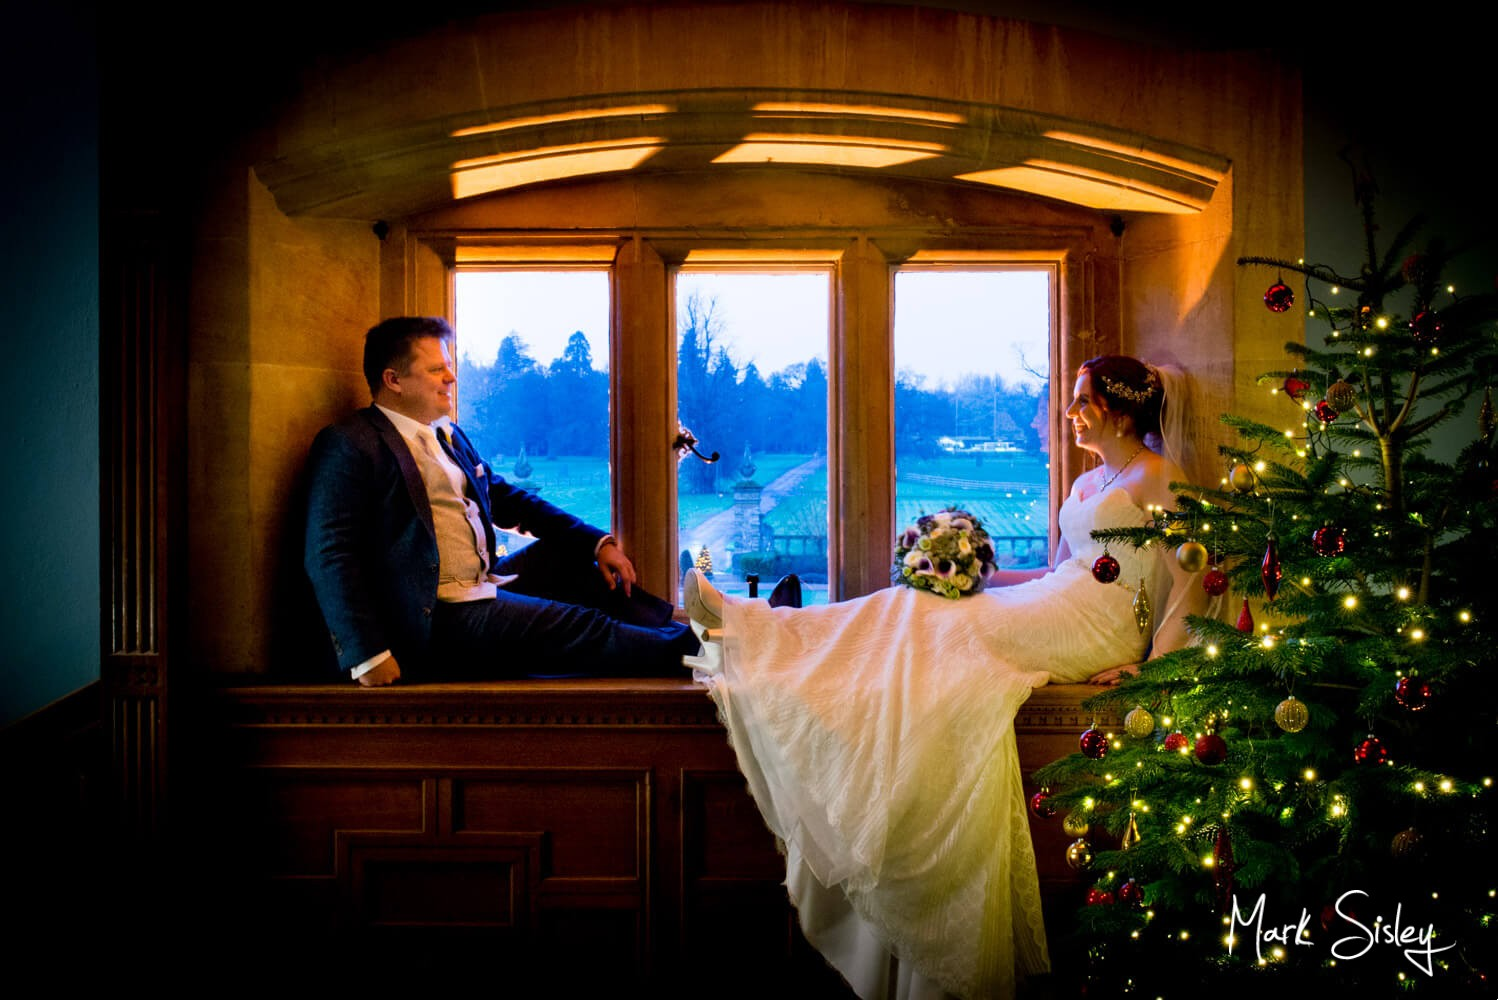 Eynsham Hall winter wedding pose in the window by the Christmas tree